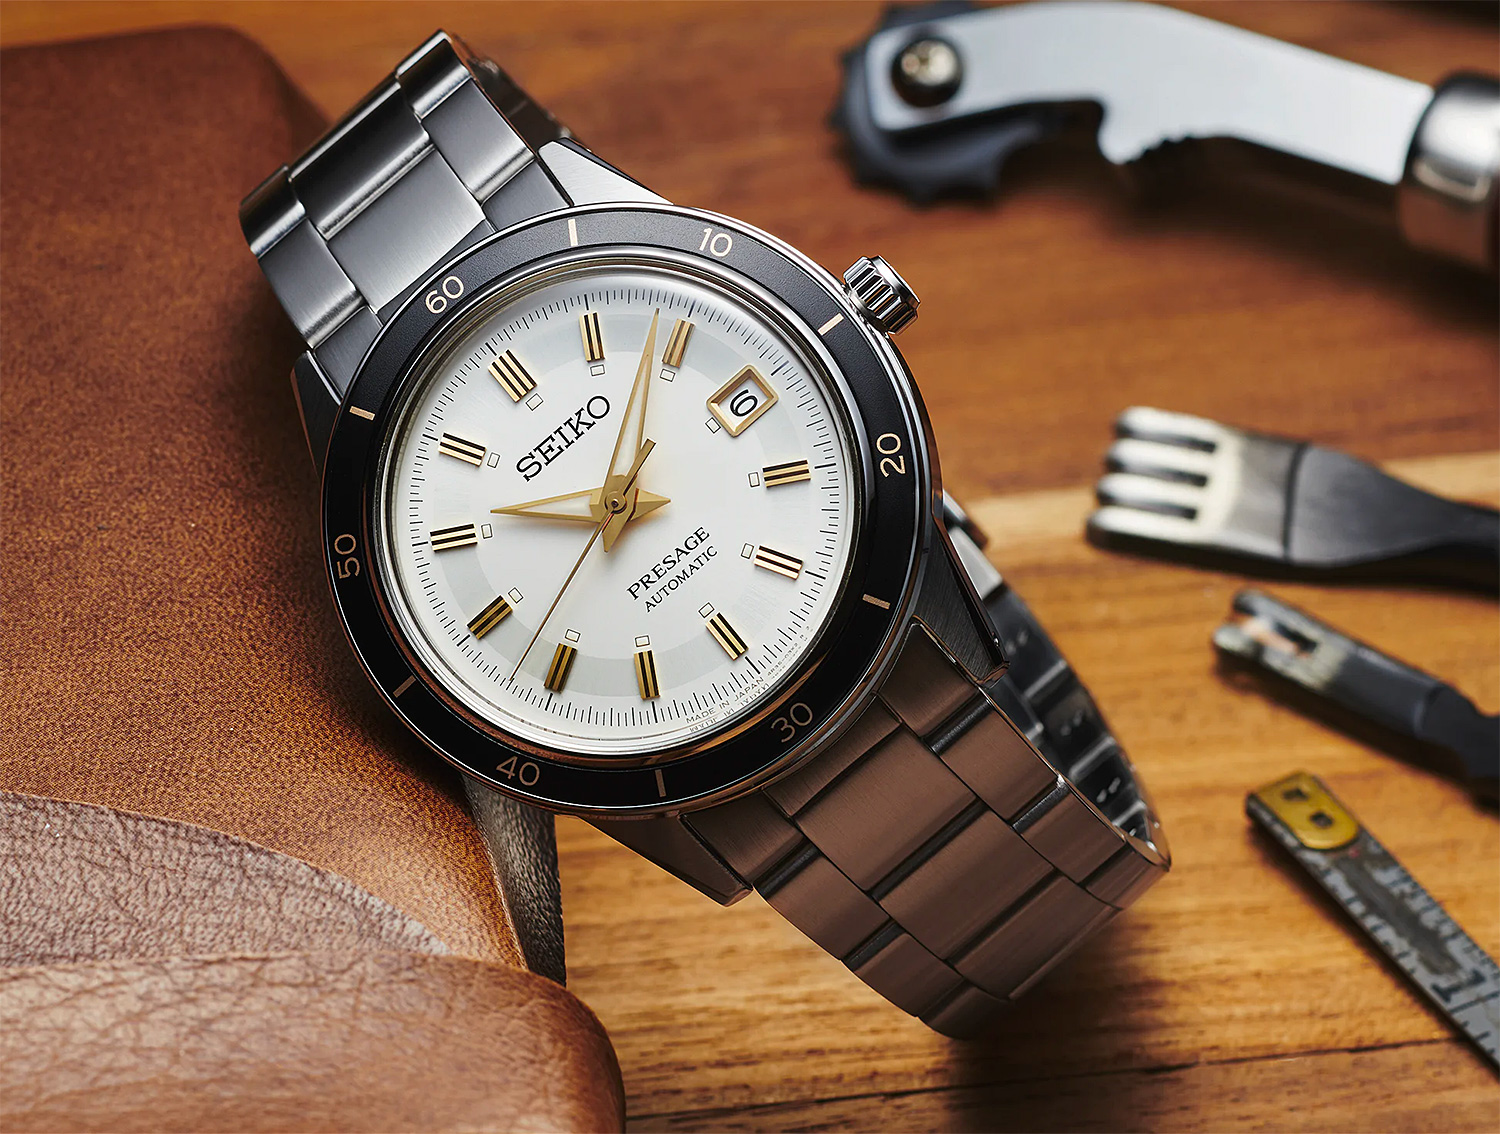 Seiko's Presage Style 60s Channels Mid-Century Cool at werd.com